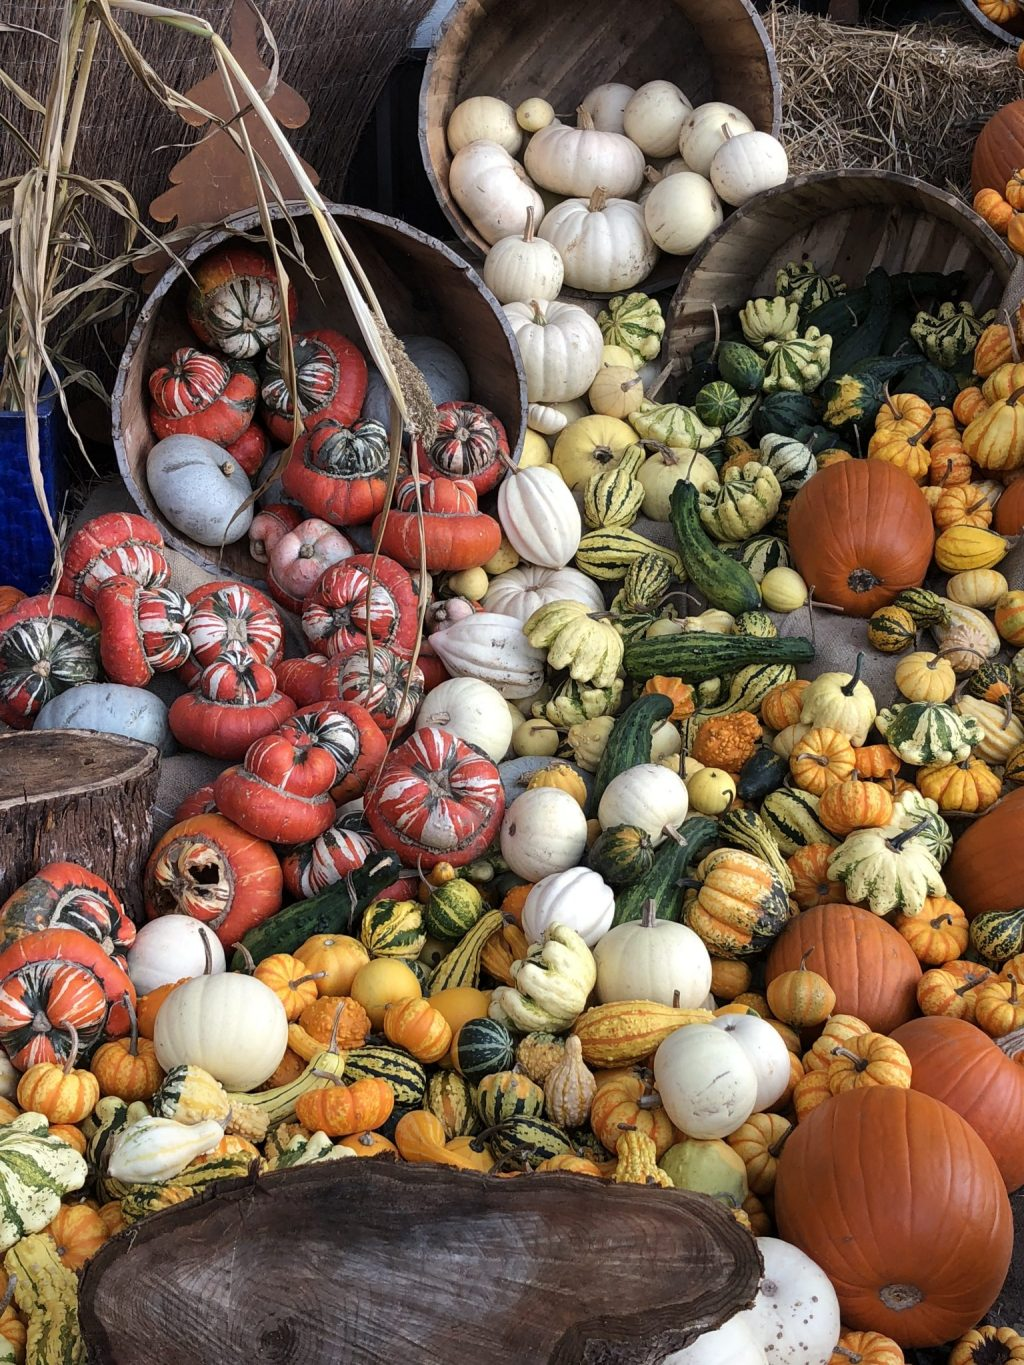 baskets of pumpkins for sale at market